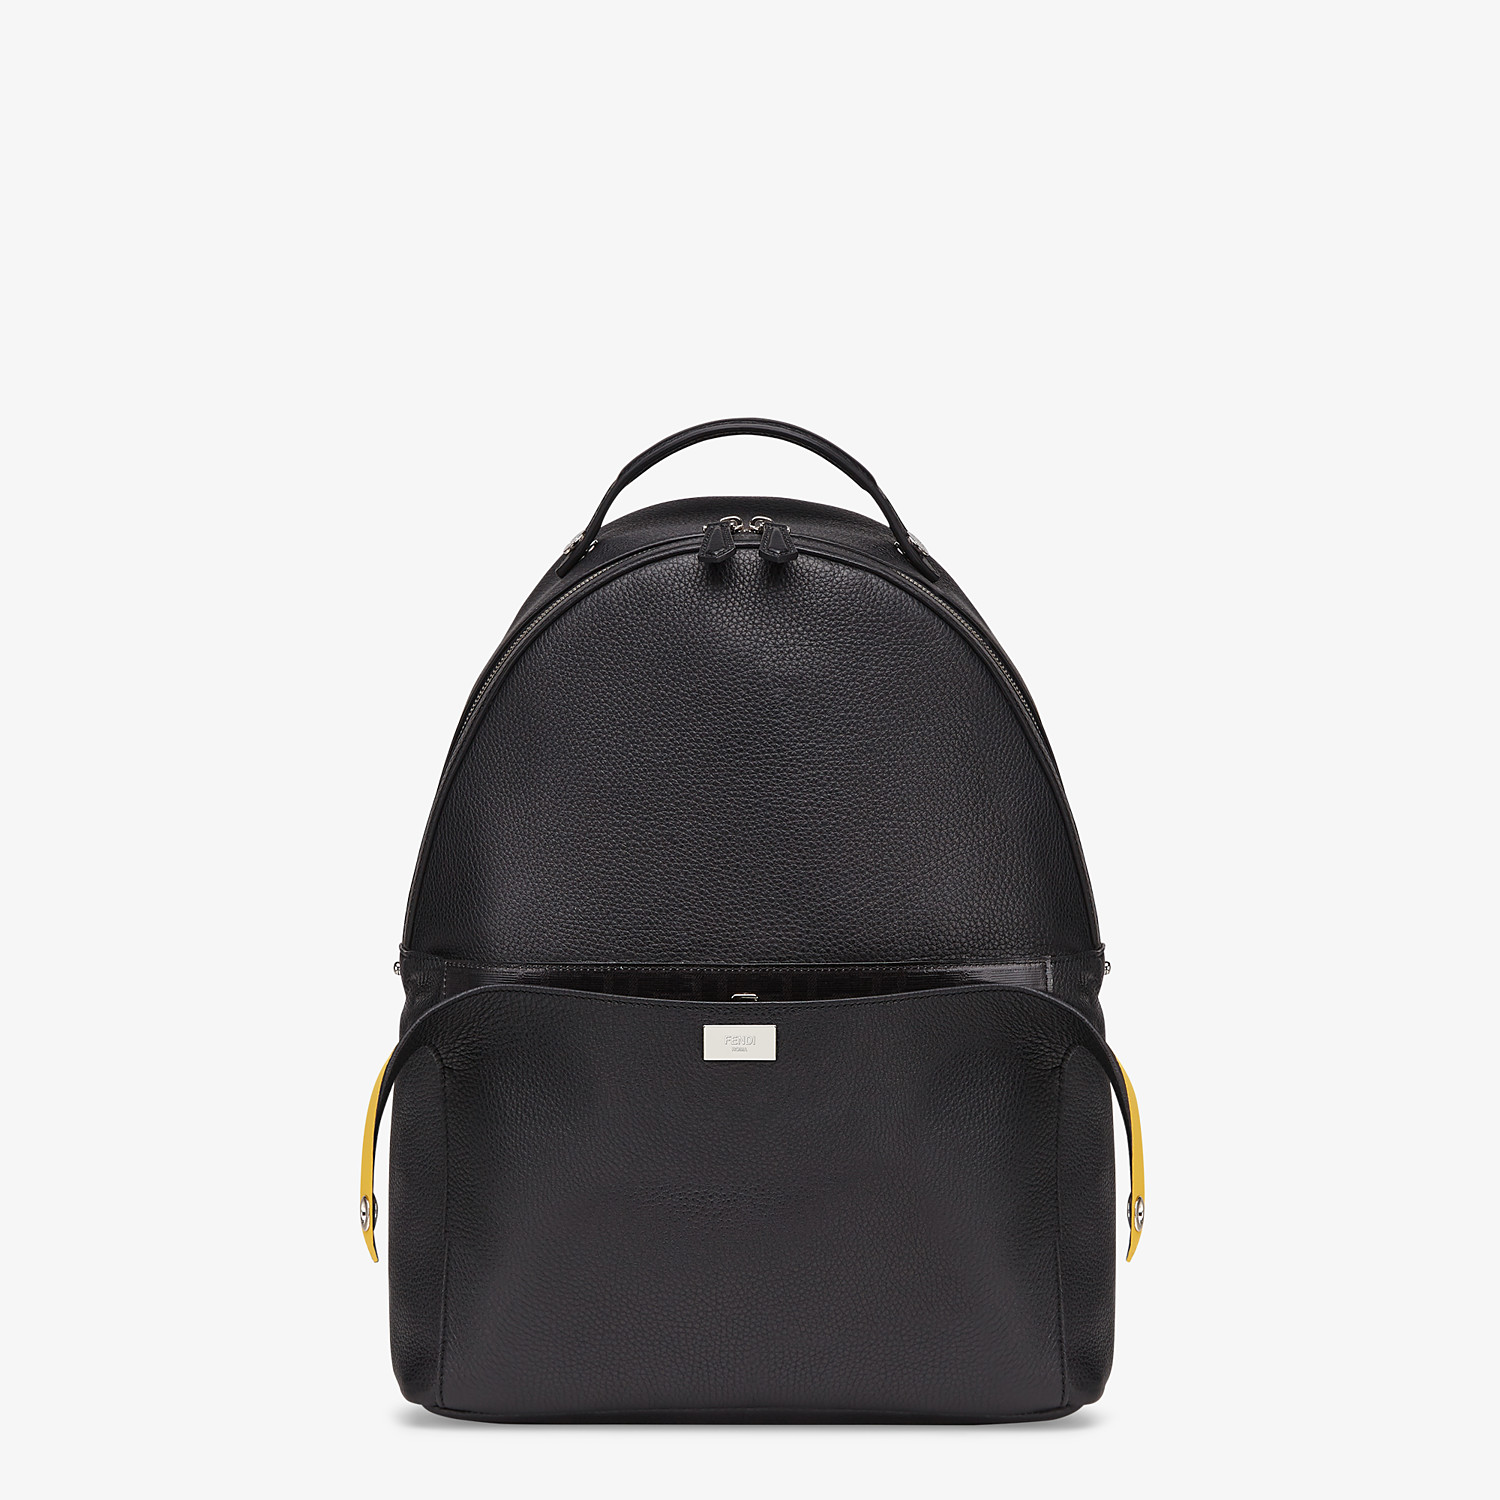 FENDI PEEKABOO BACKPACK - Black leather backpack - view 1 detail